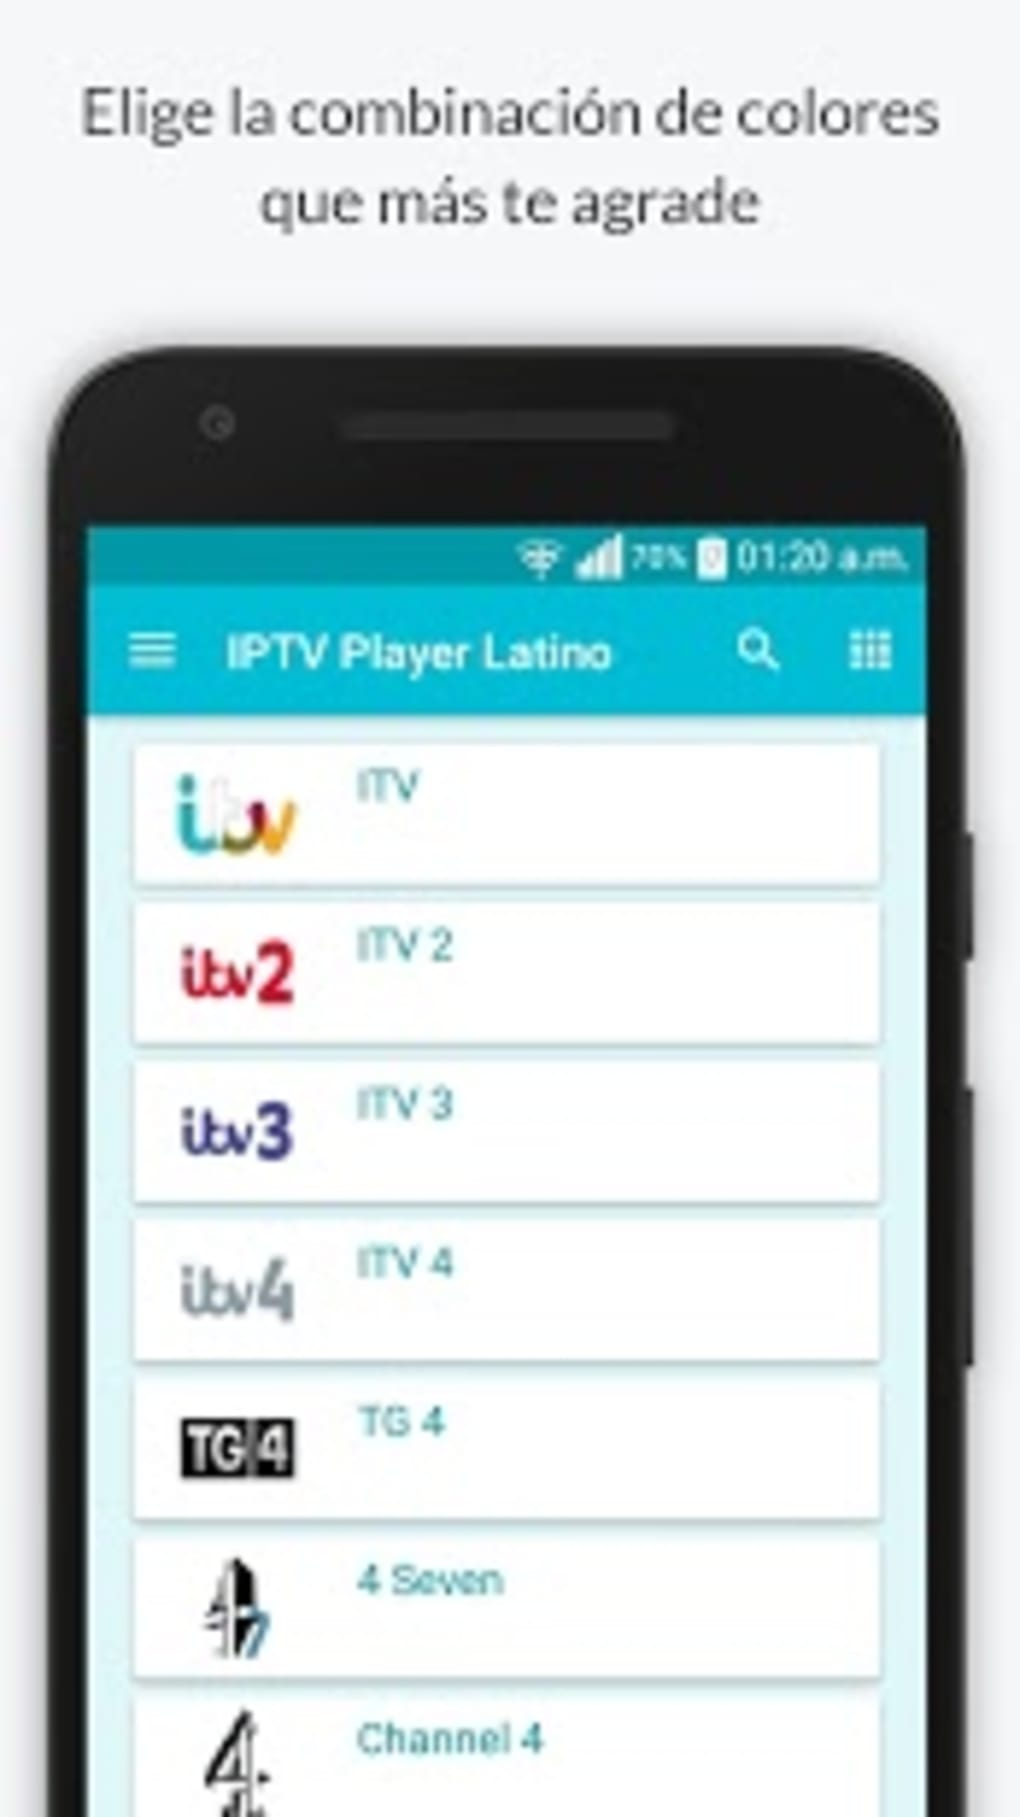 IPTV Player Latino for Android - Download